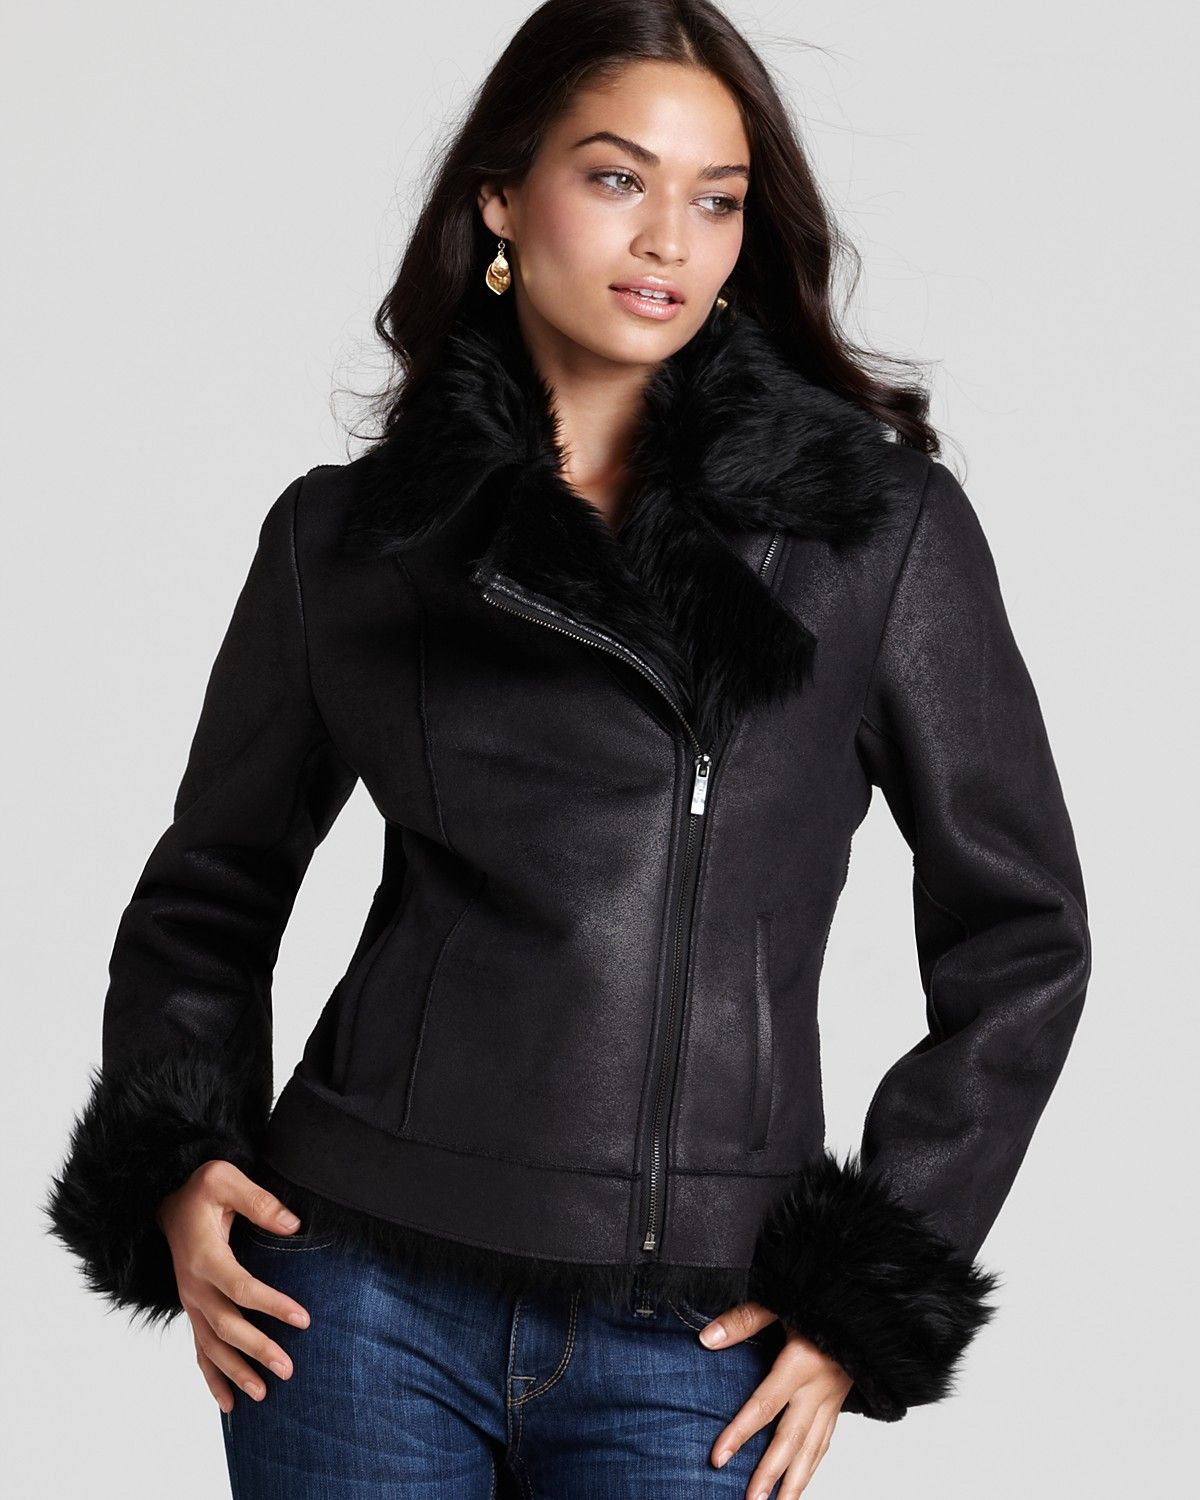 waaarm Asymmetric zip jacket, Jackets, Beautiful outfits